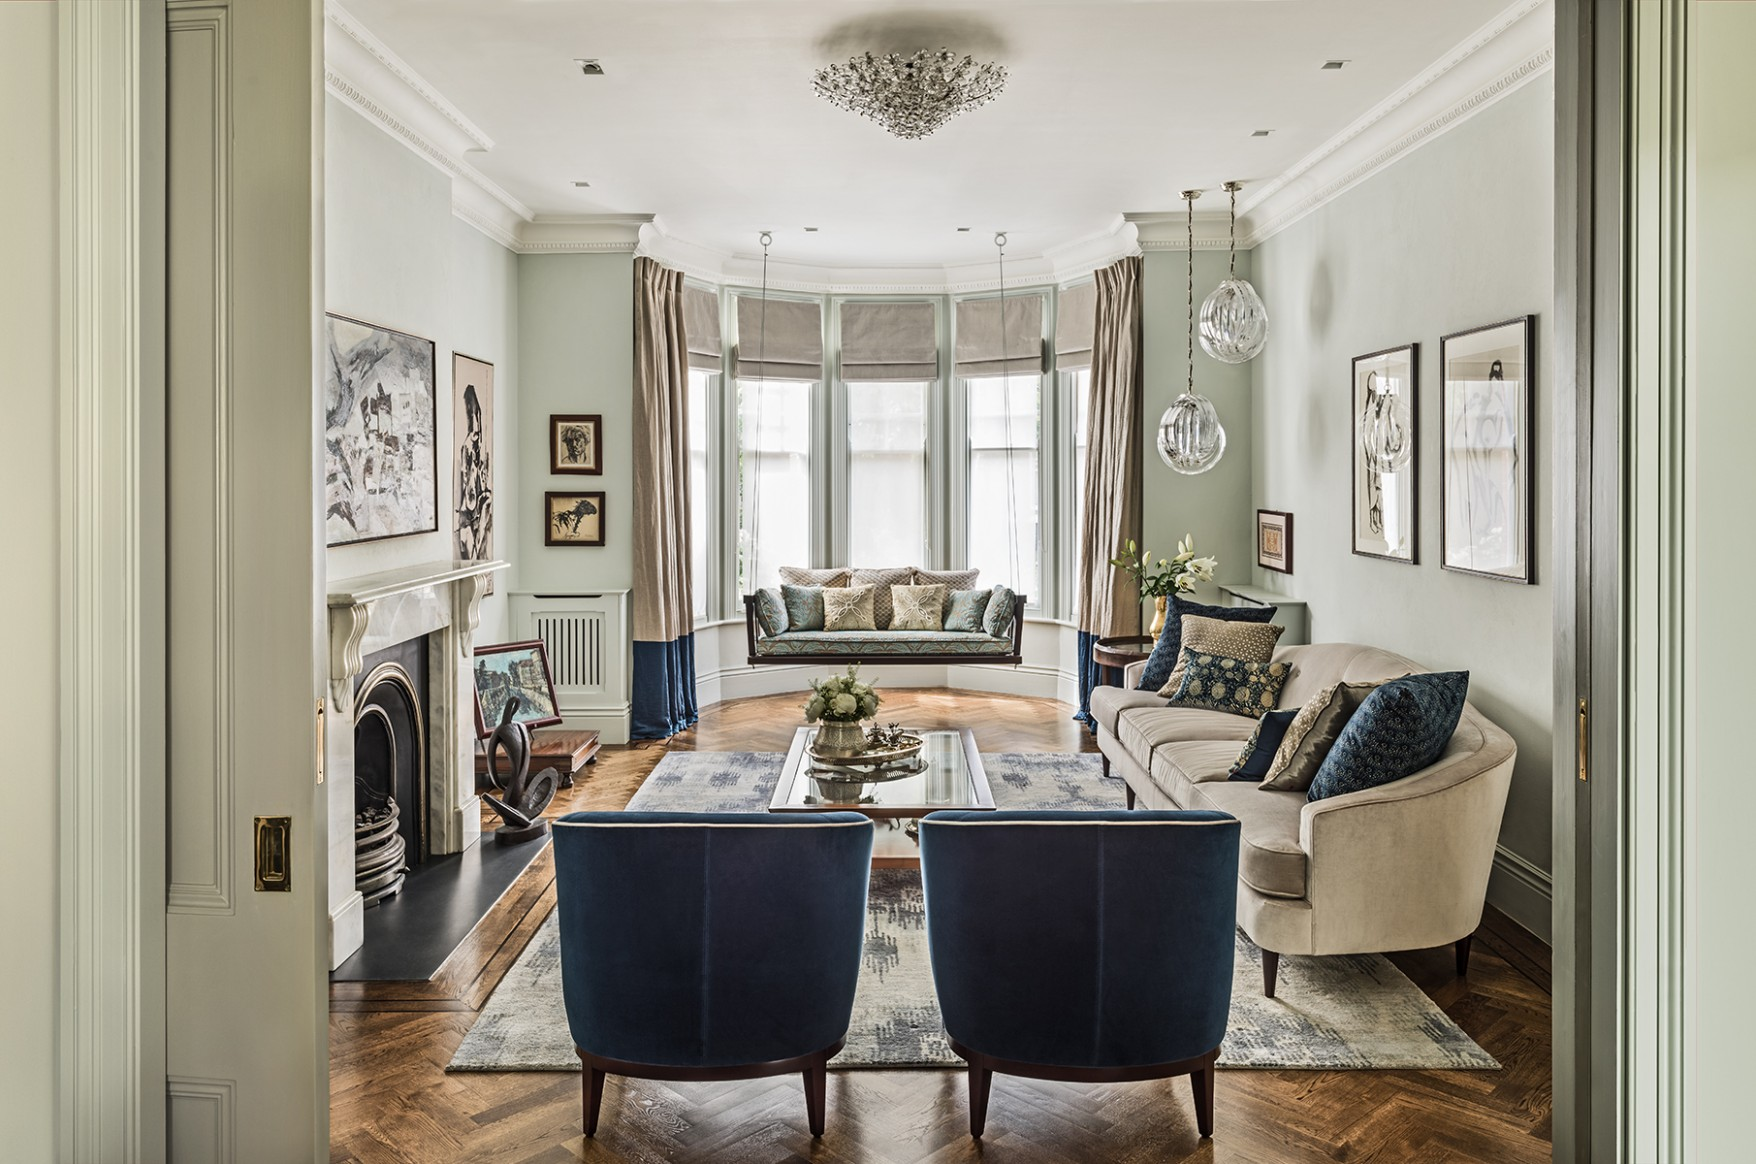 Top 9 interior design living room ideas from the best UK interior  - Dining Room Ideas In Uk